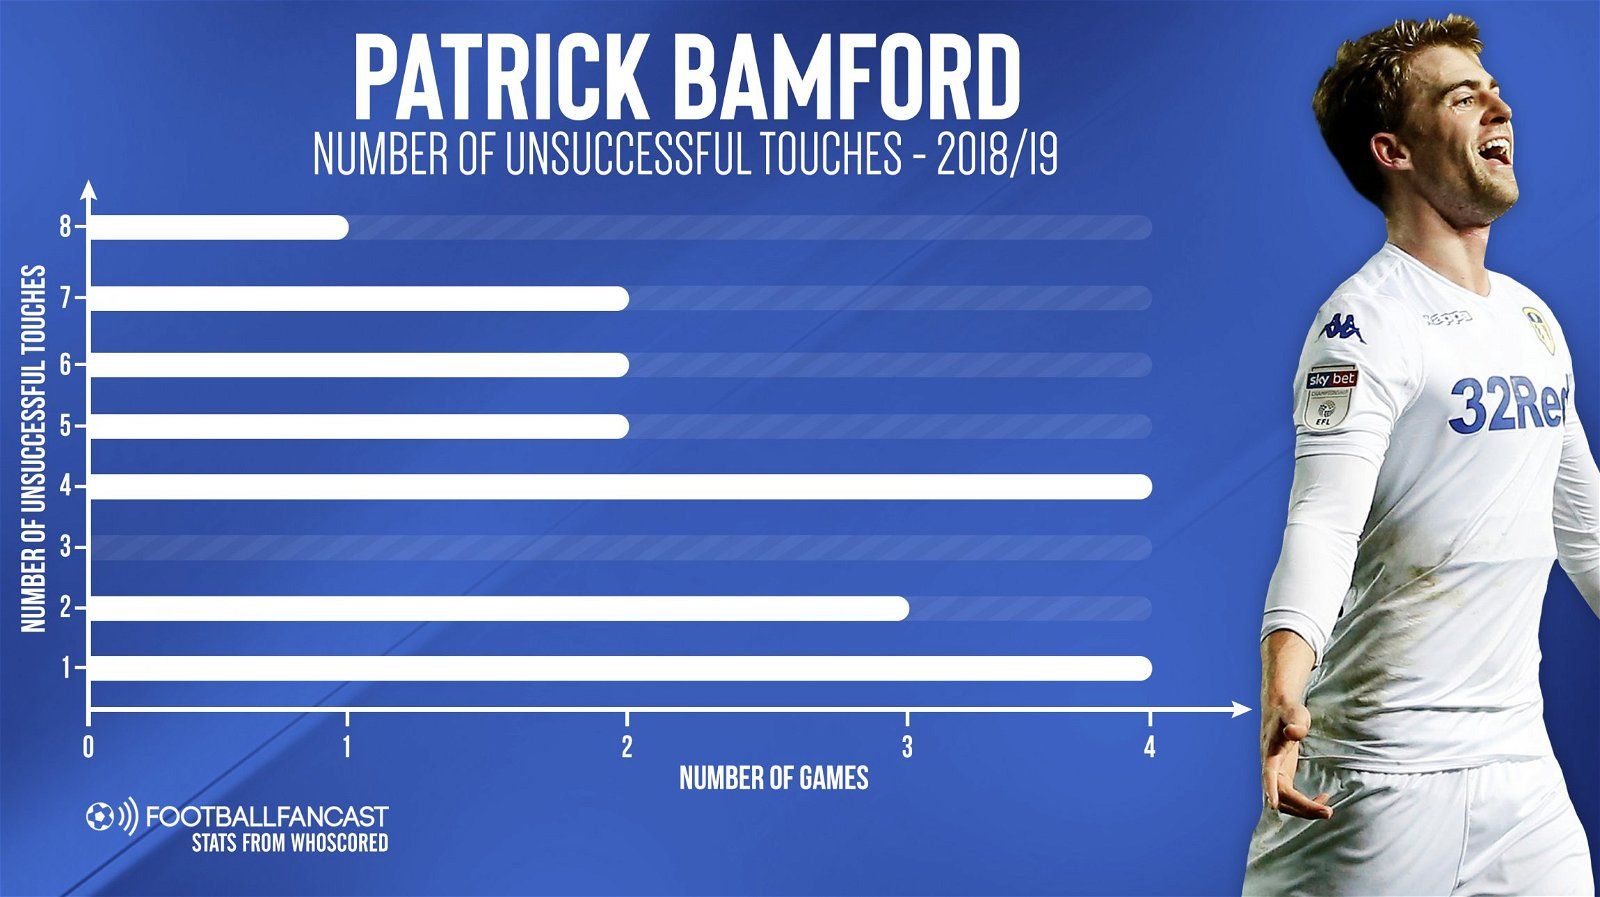 Patrick Bamford Number of dispossessions 2018 19 1 - Patrick Bamford will continue to struggle at Leeds unless he makes change in one area - opinion